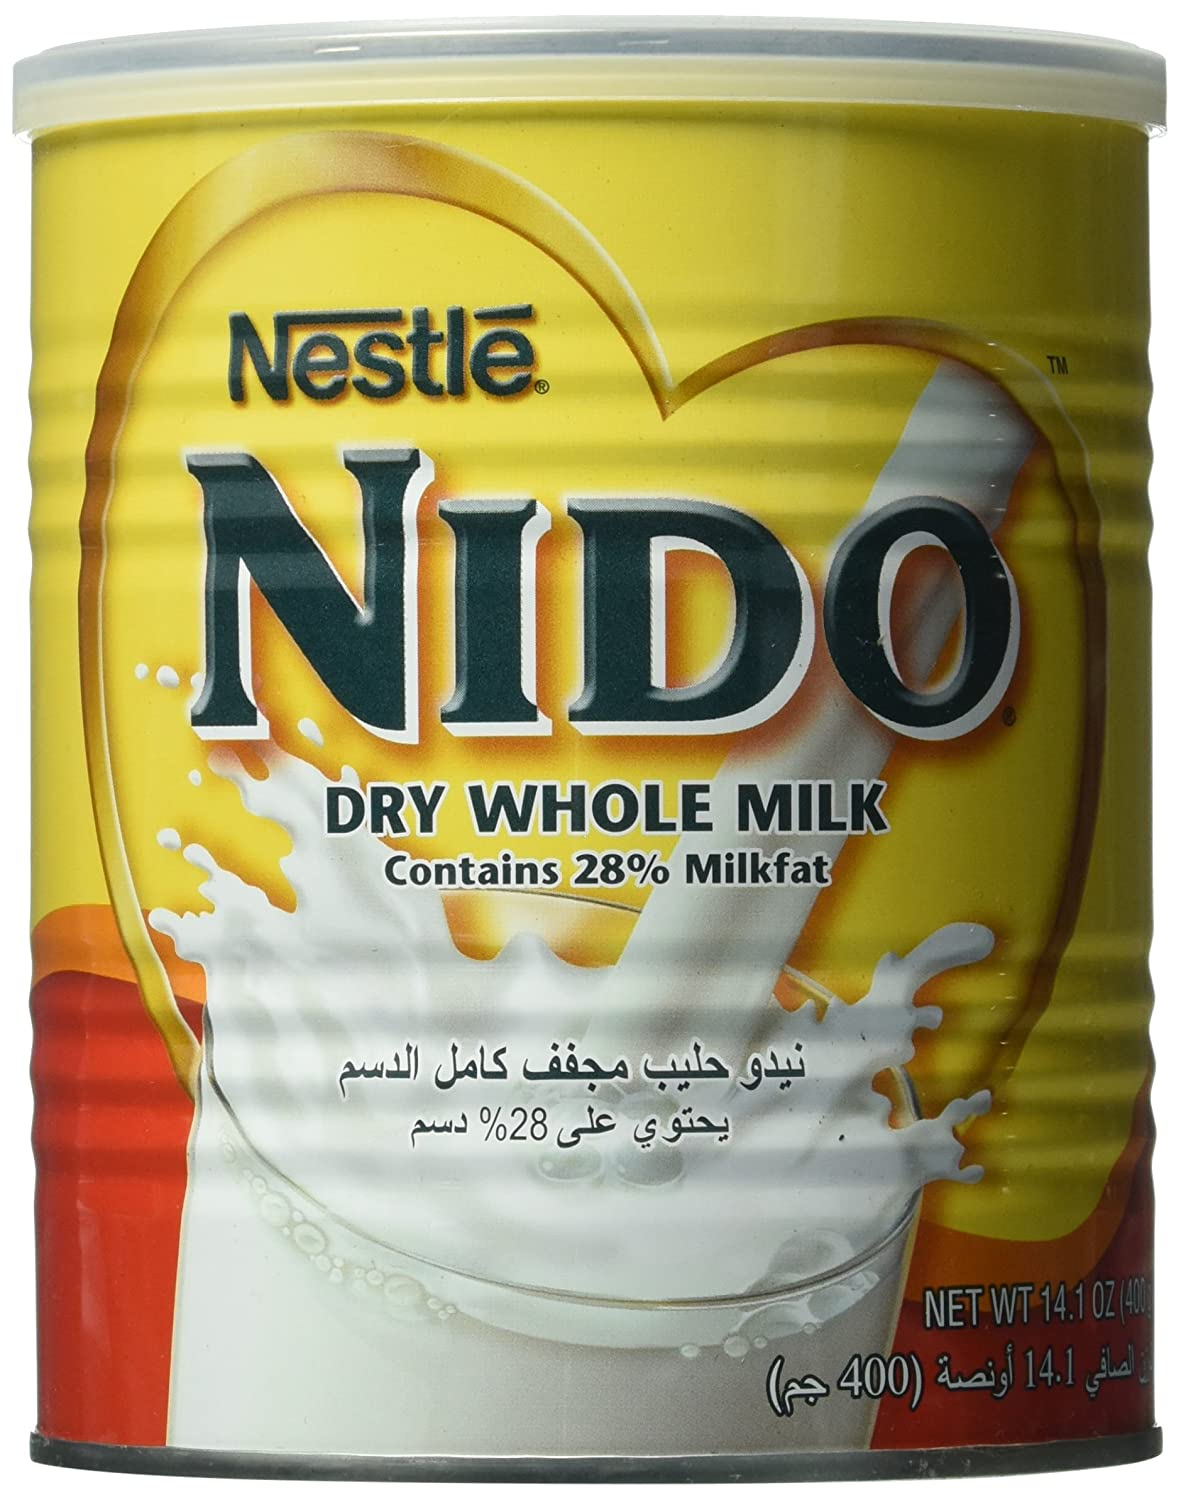 Nestle Nido Milk Powder, Imported, (400 gm), 14.1 Ounce Can: Amazon.es: Alimentación y bebidas